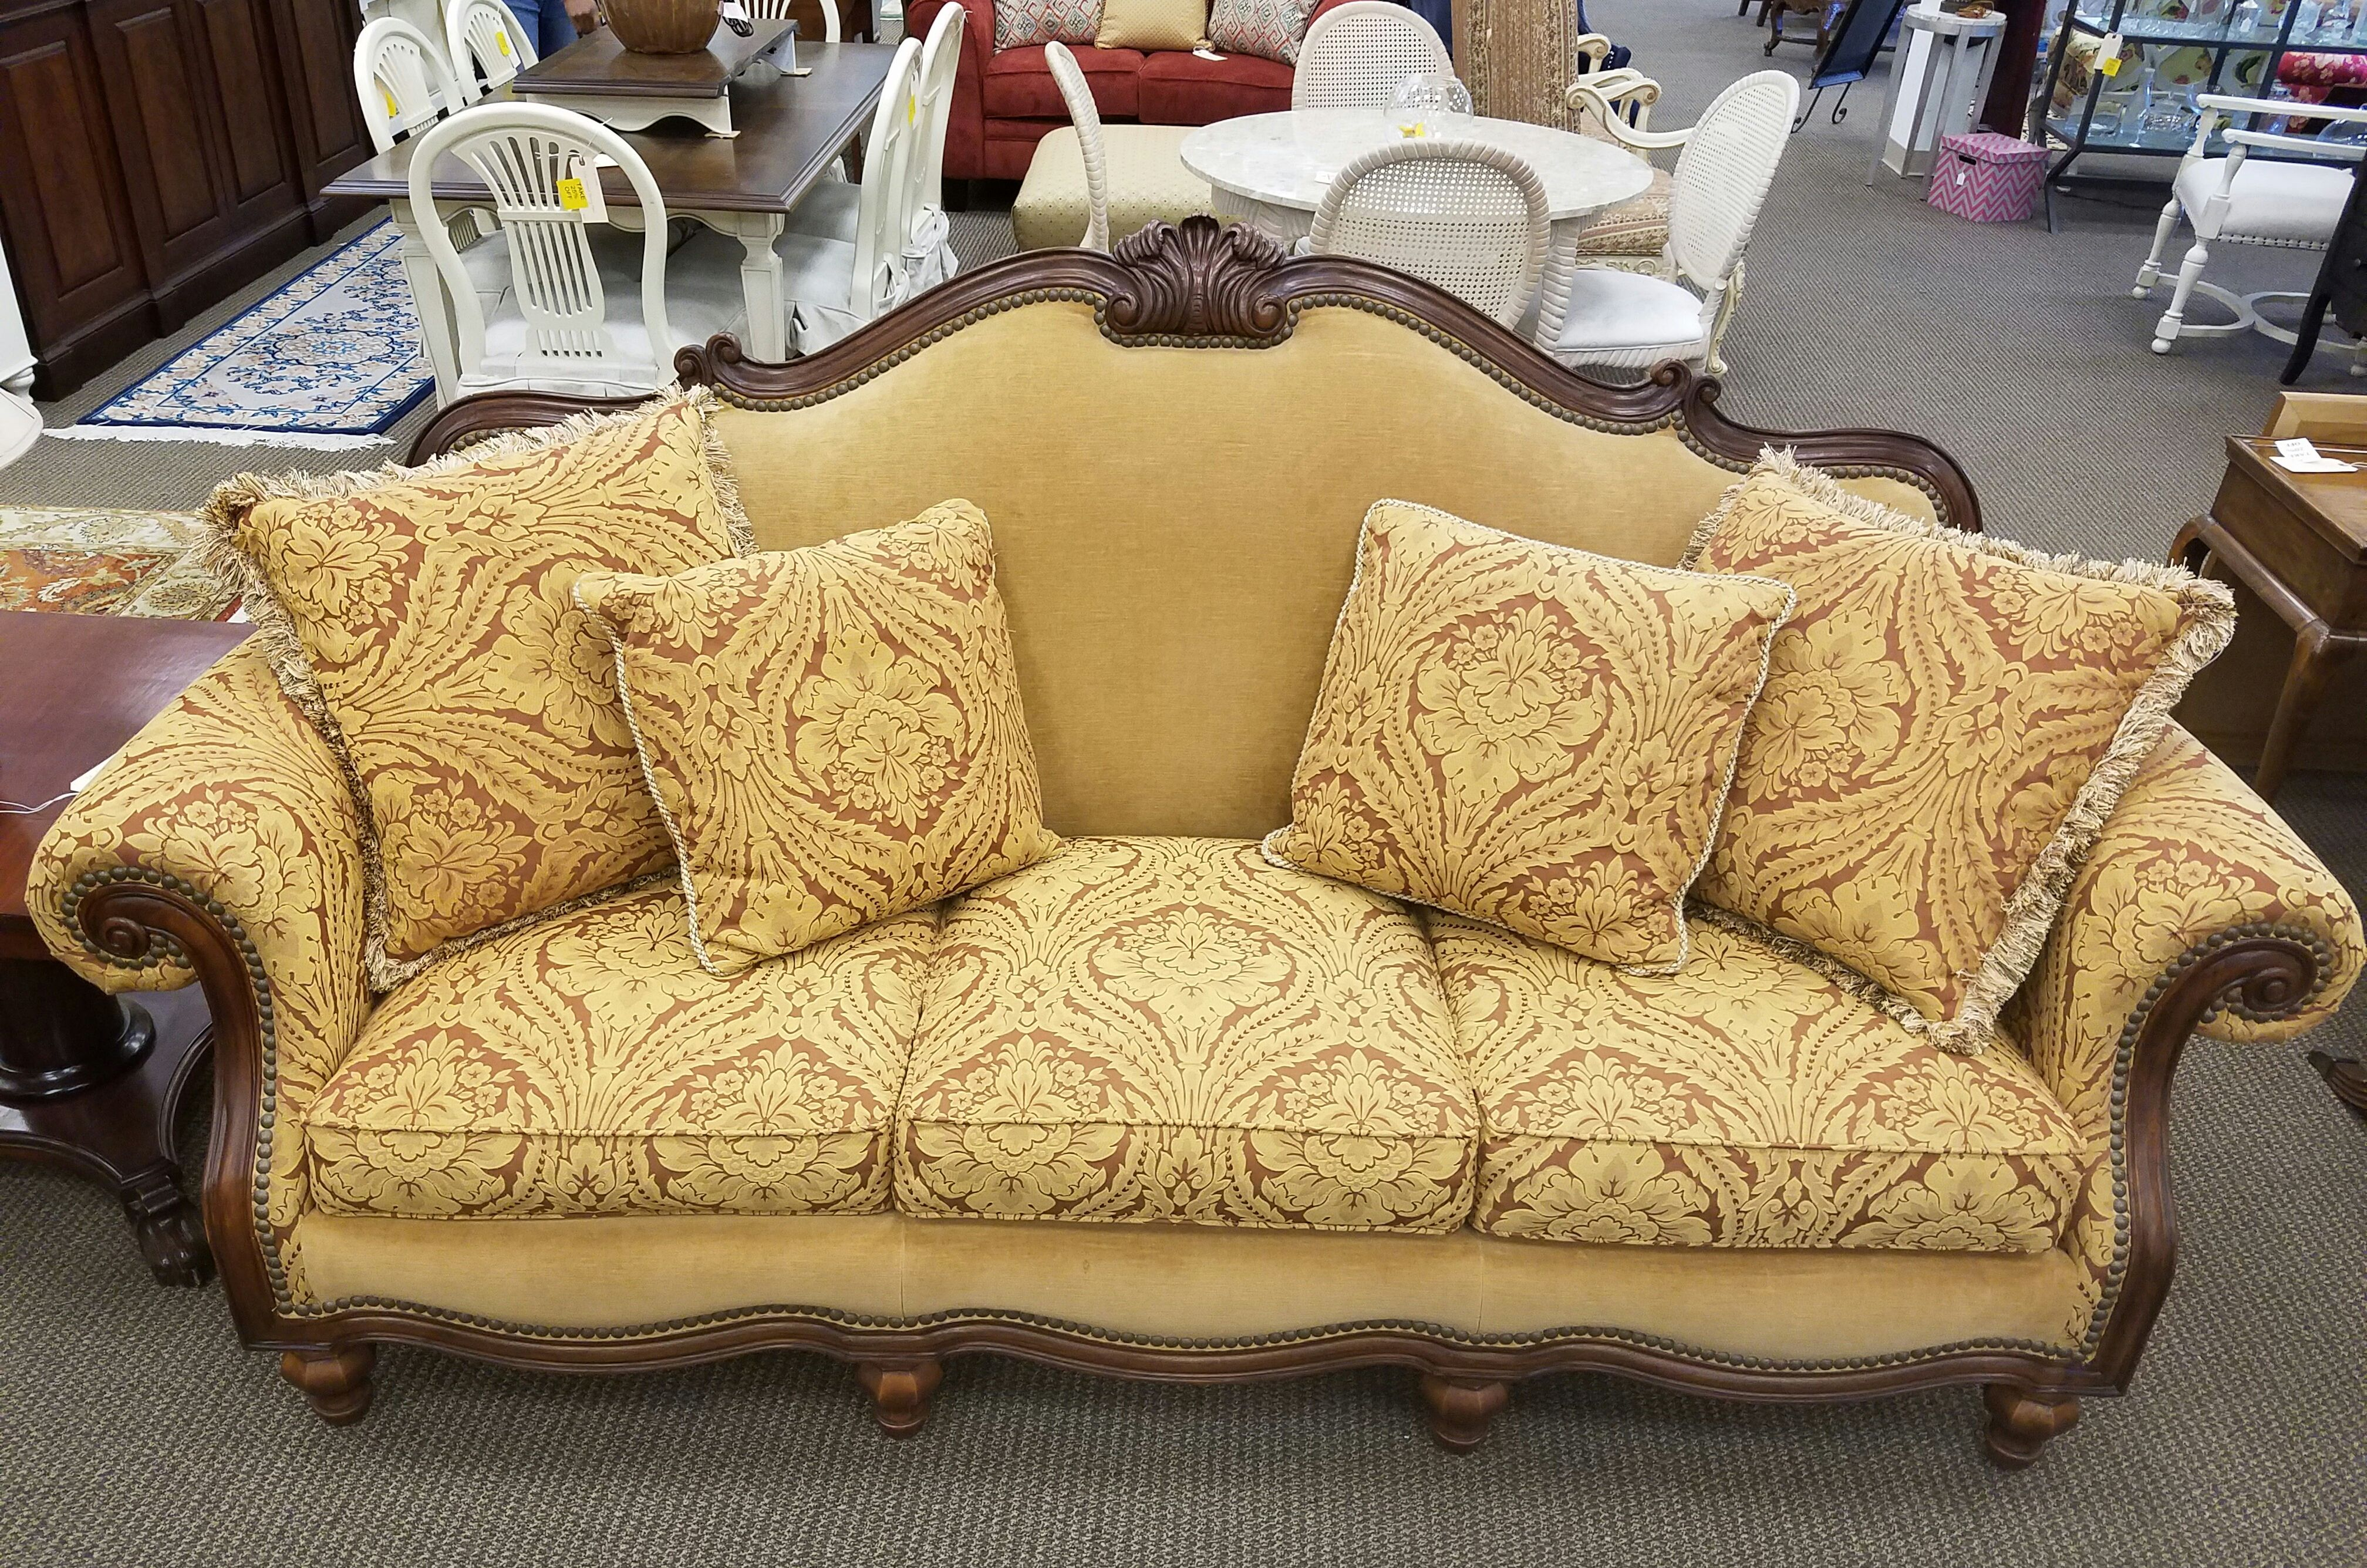 This Thomasville vintage sofa is priced at only 495